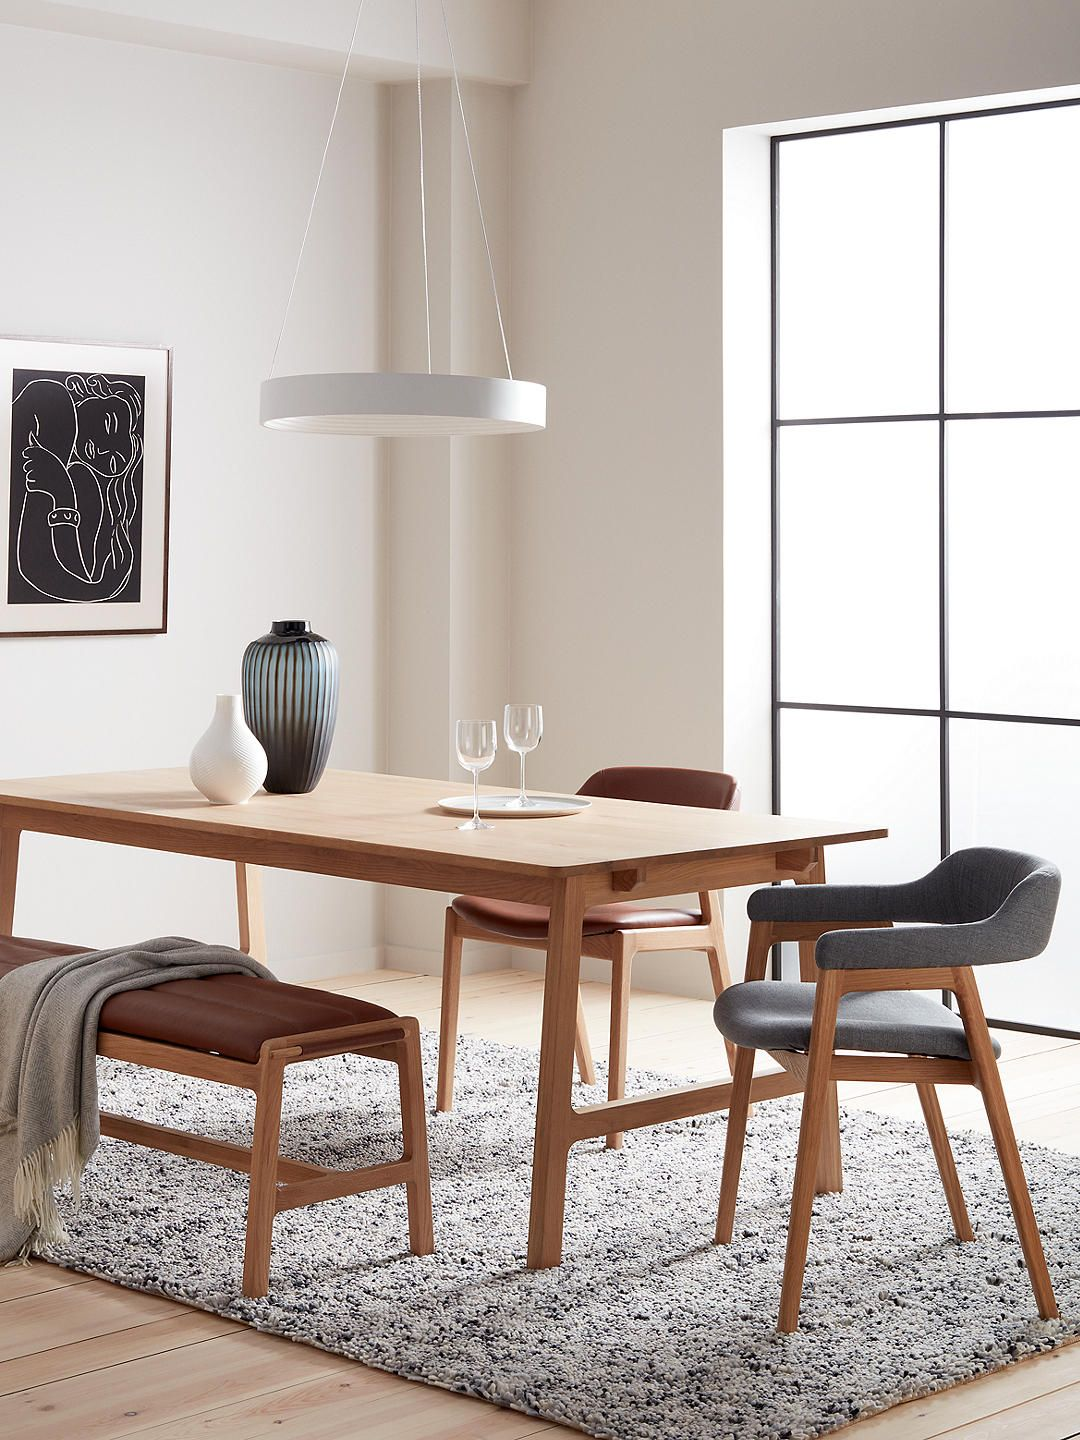 John Lewis & Partners Santino 10-12 Seater Extending Dining Table, Solid Oak